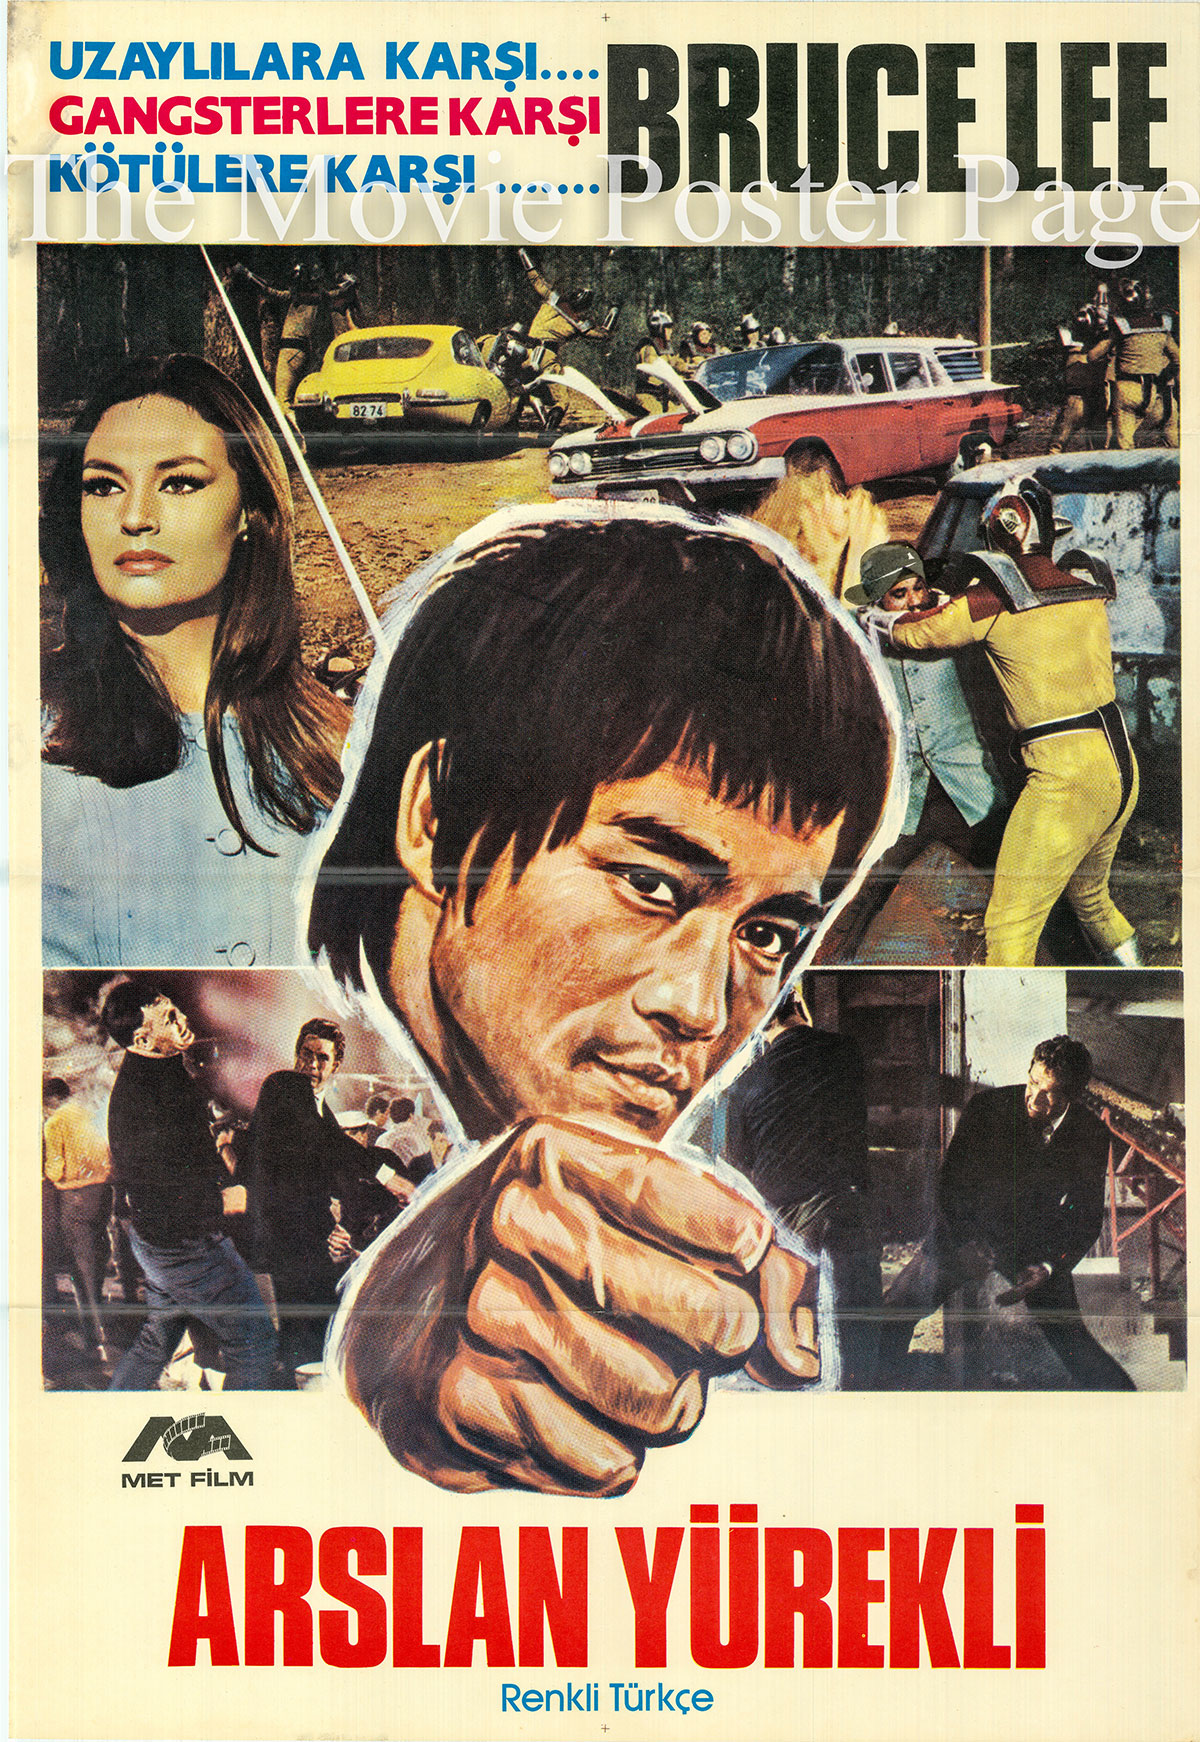 Pictured is a Turkish one-sheet poster for the 1973 Robert Clouse film Enter the Dragon starring Bruce Lee.